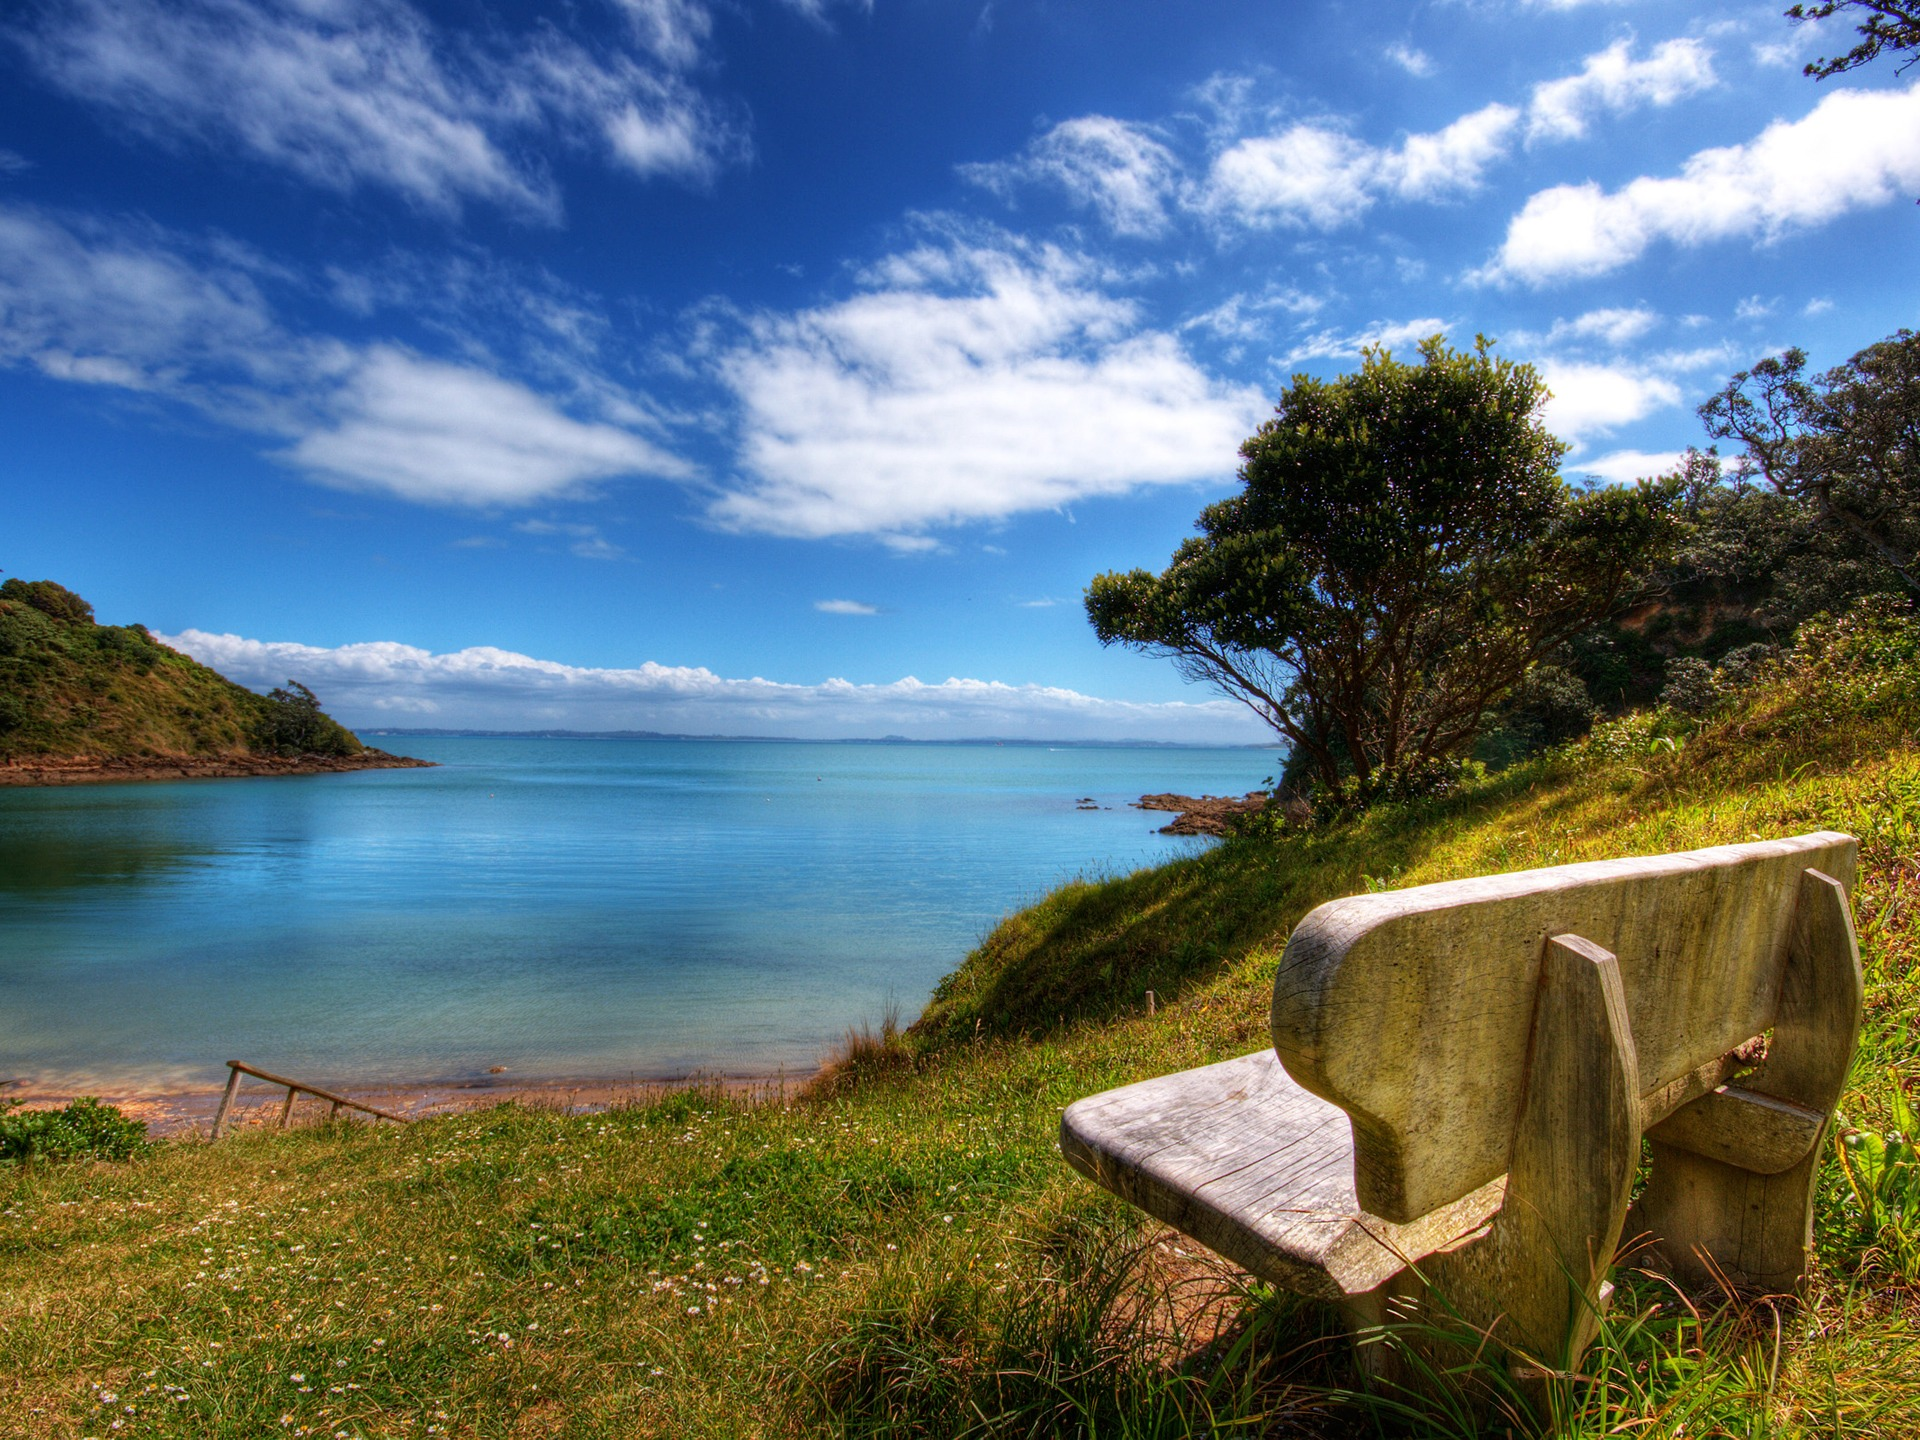 the lookout wallpaper landscape nature wallpapers in jpg format for